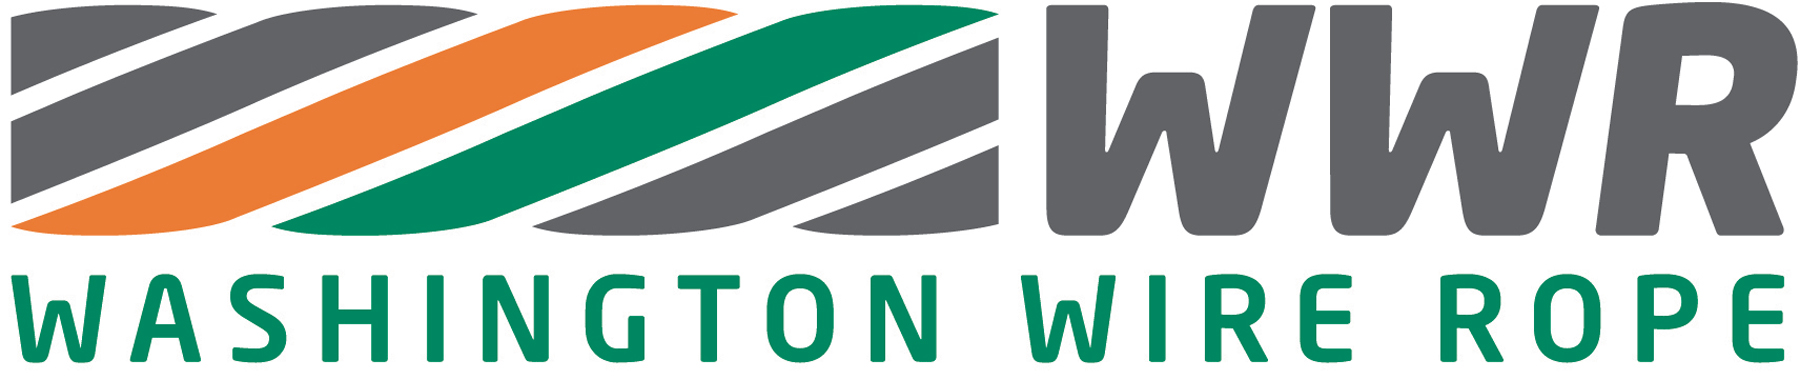 Washington Wire Rope Logo